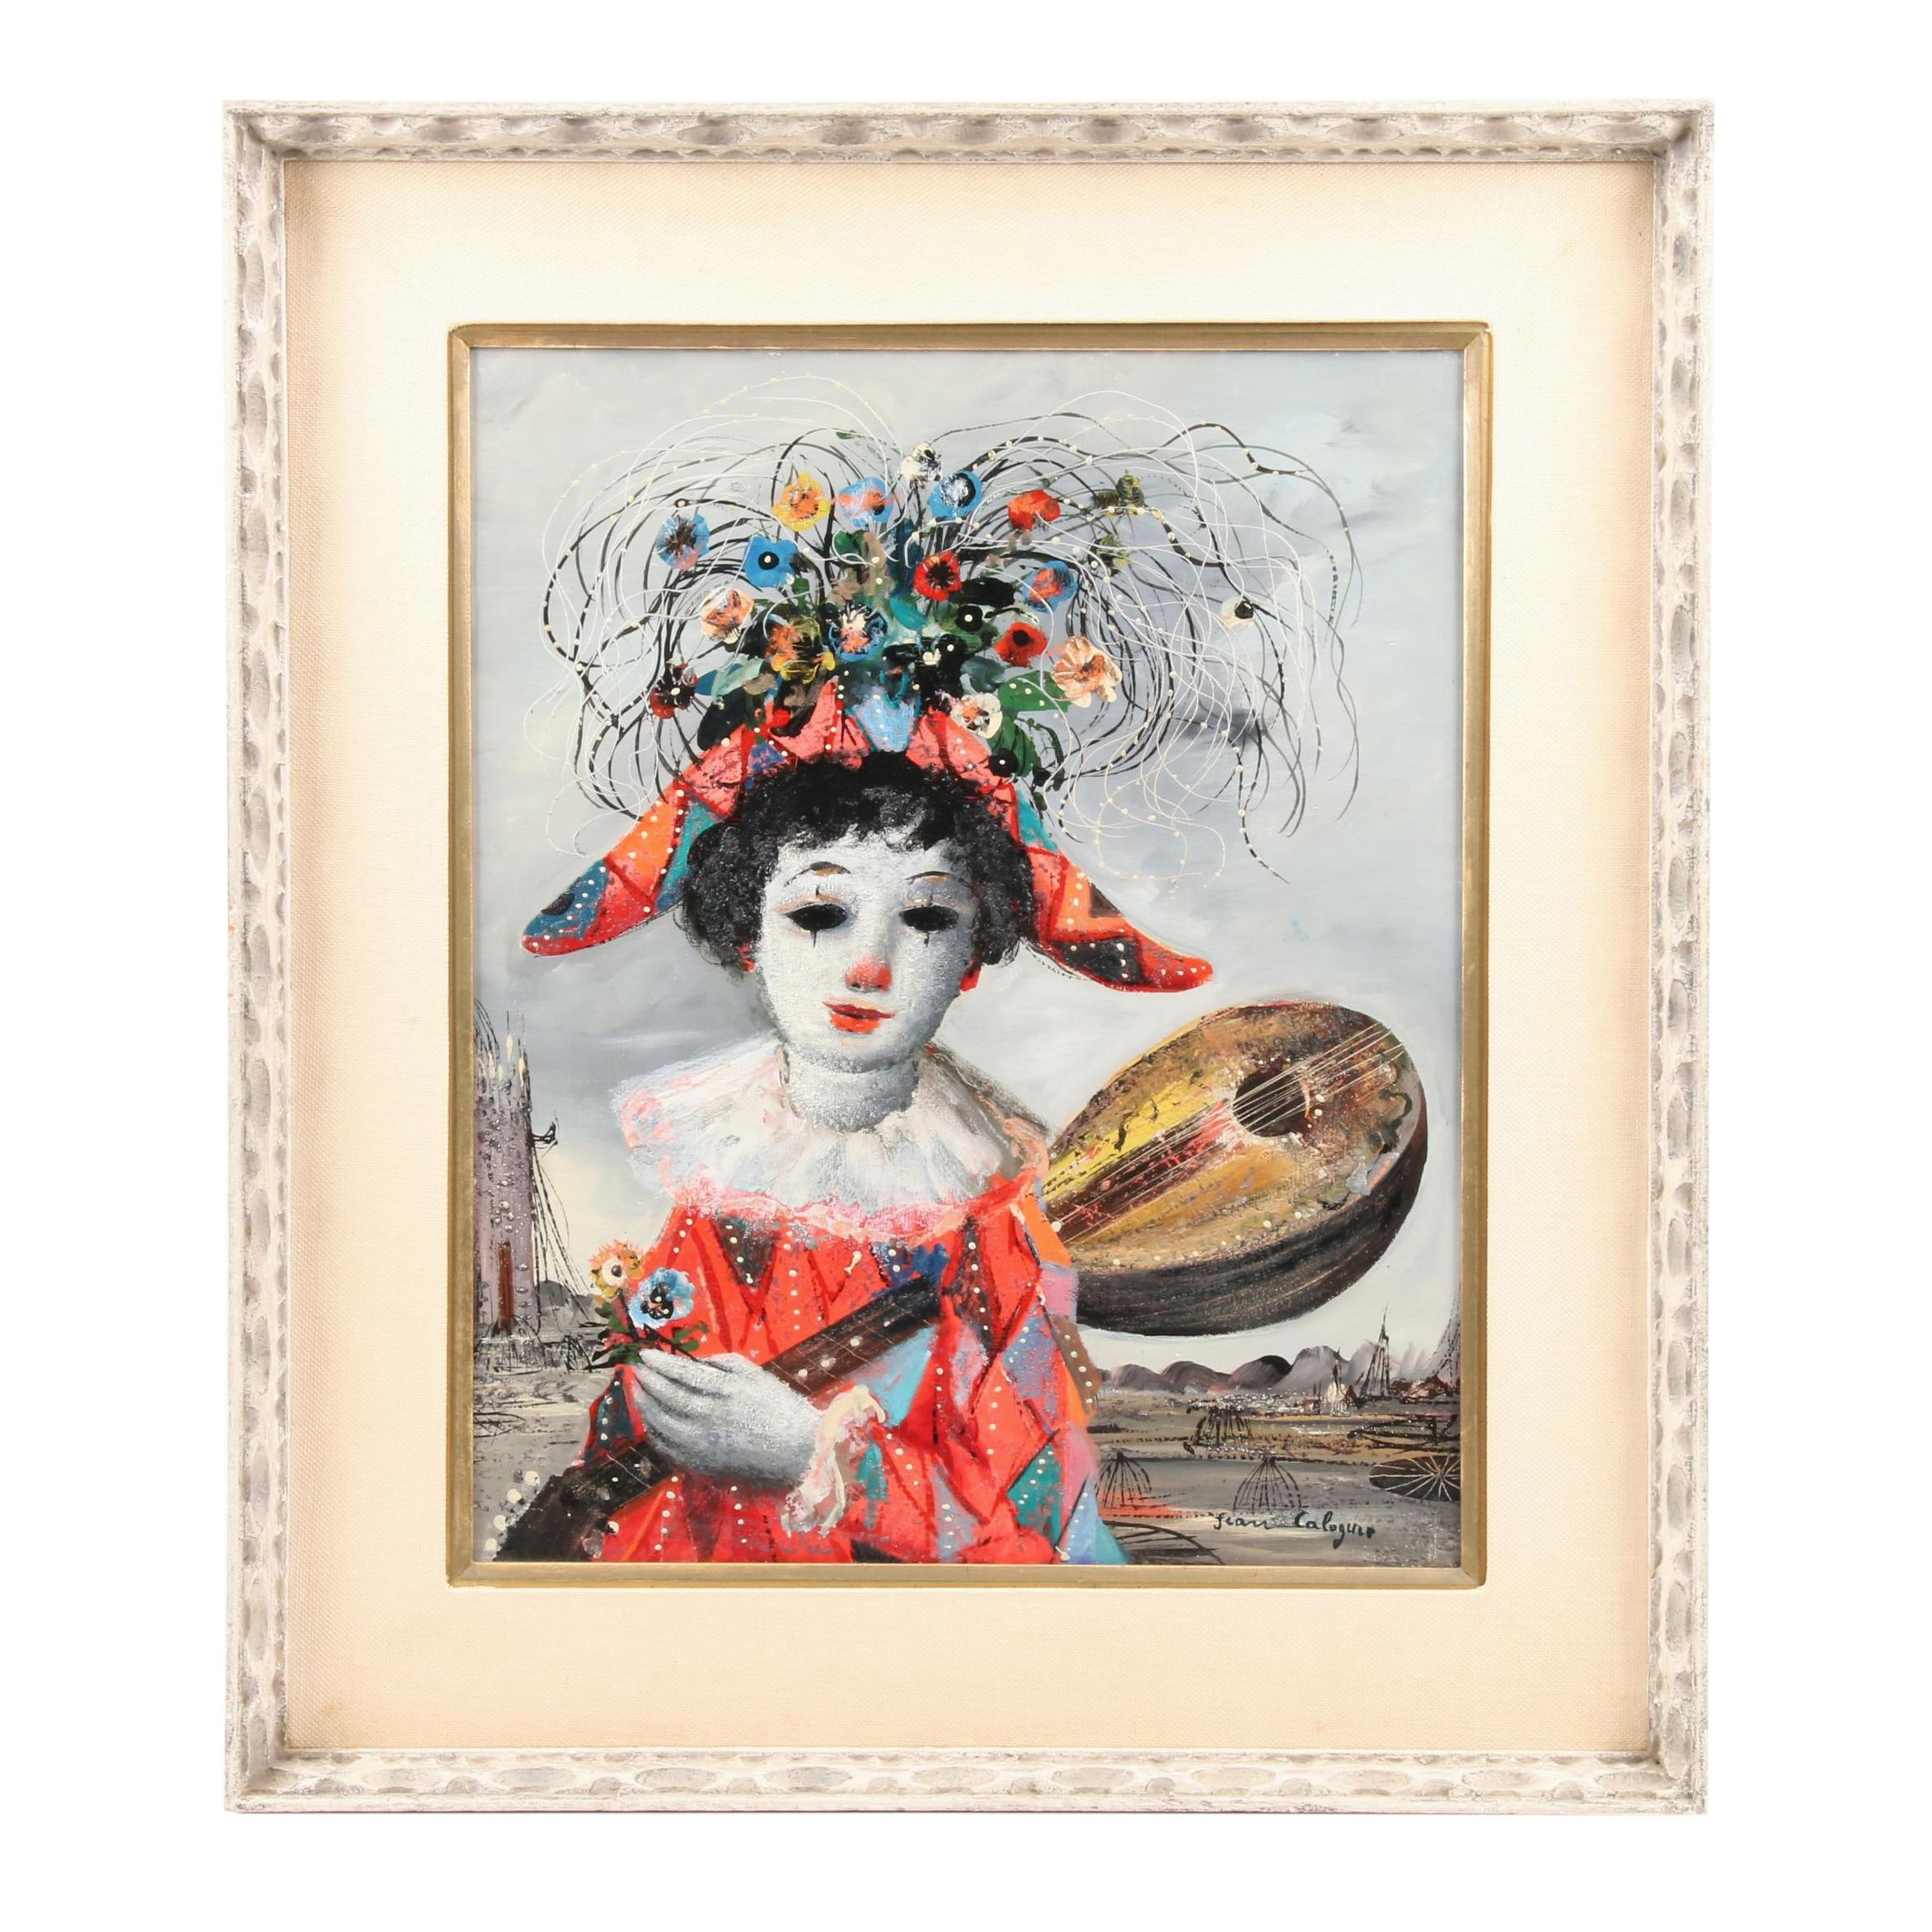 Jean Calogero Oil Painting of Carnival Figure with Mandolin